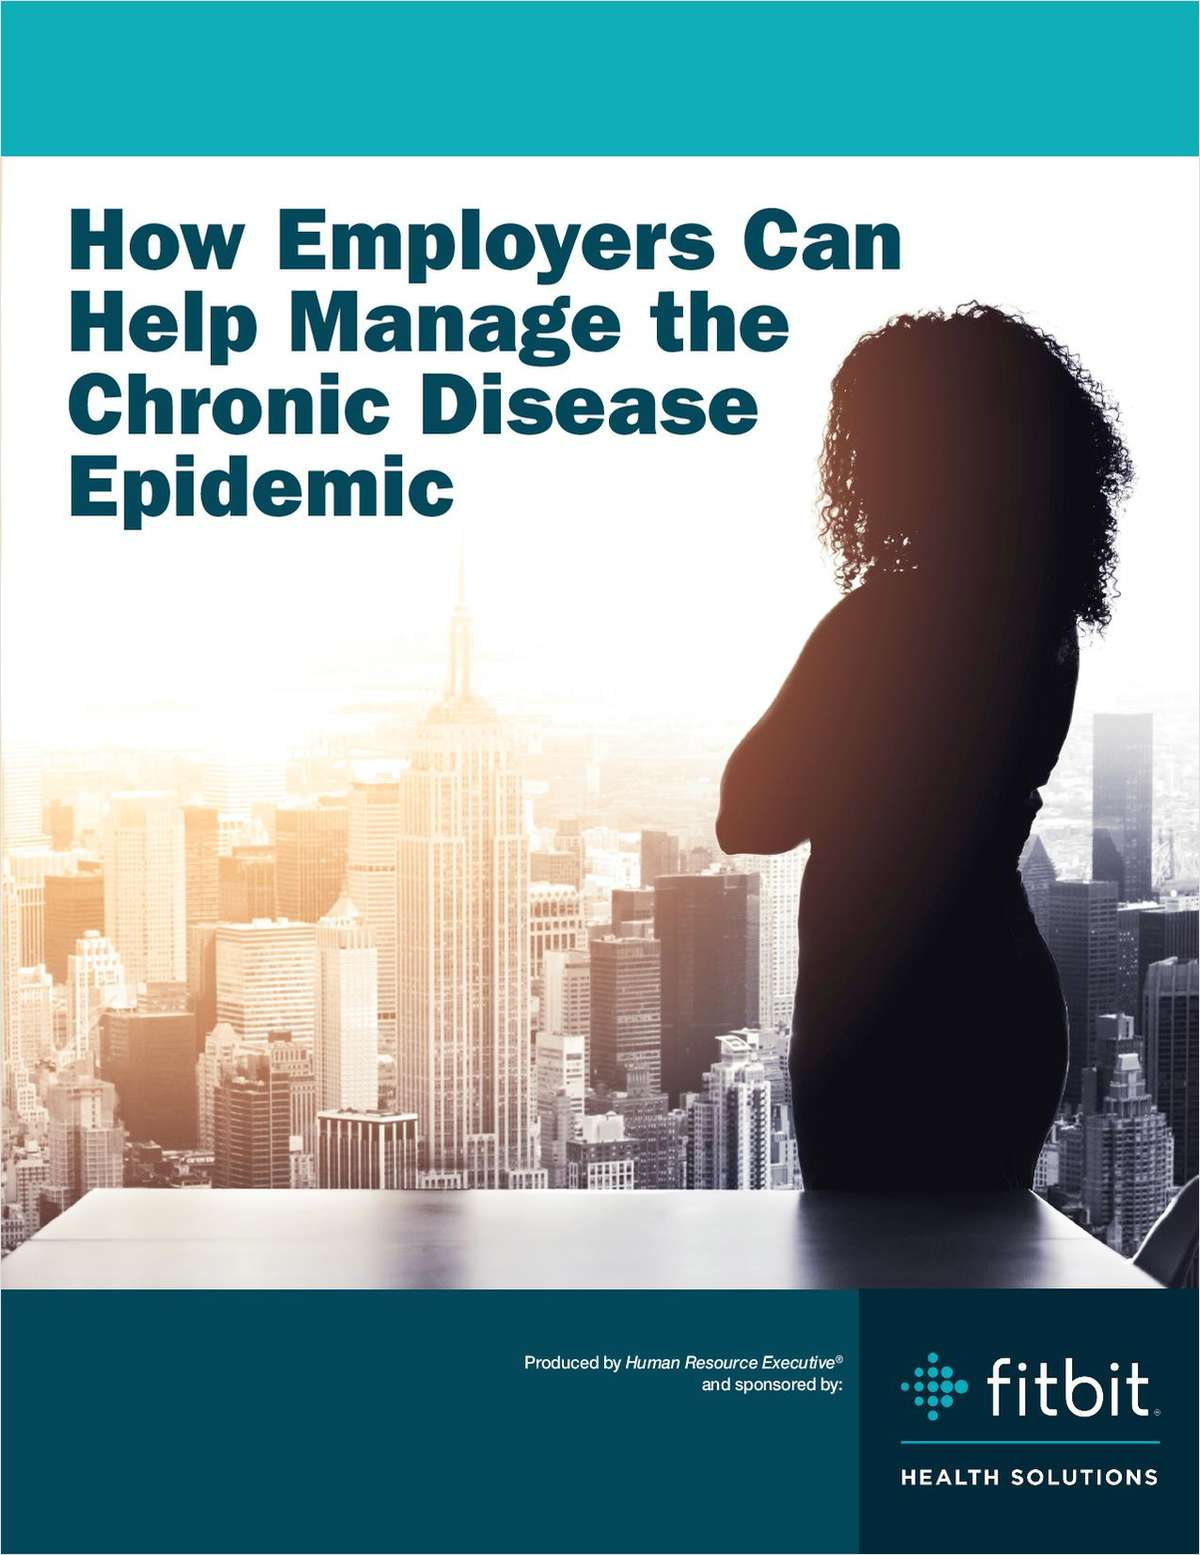 How Employers Can Help Manage the Chronic Disease Epidemic